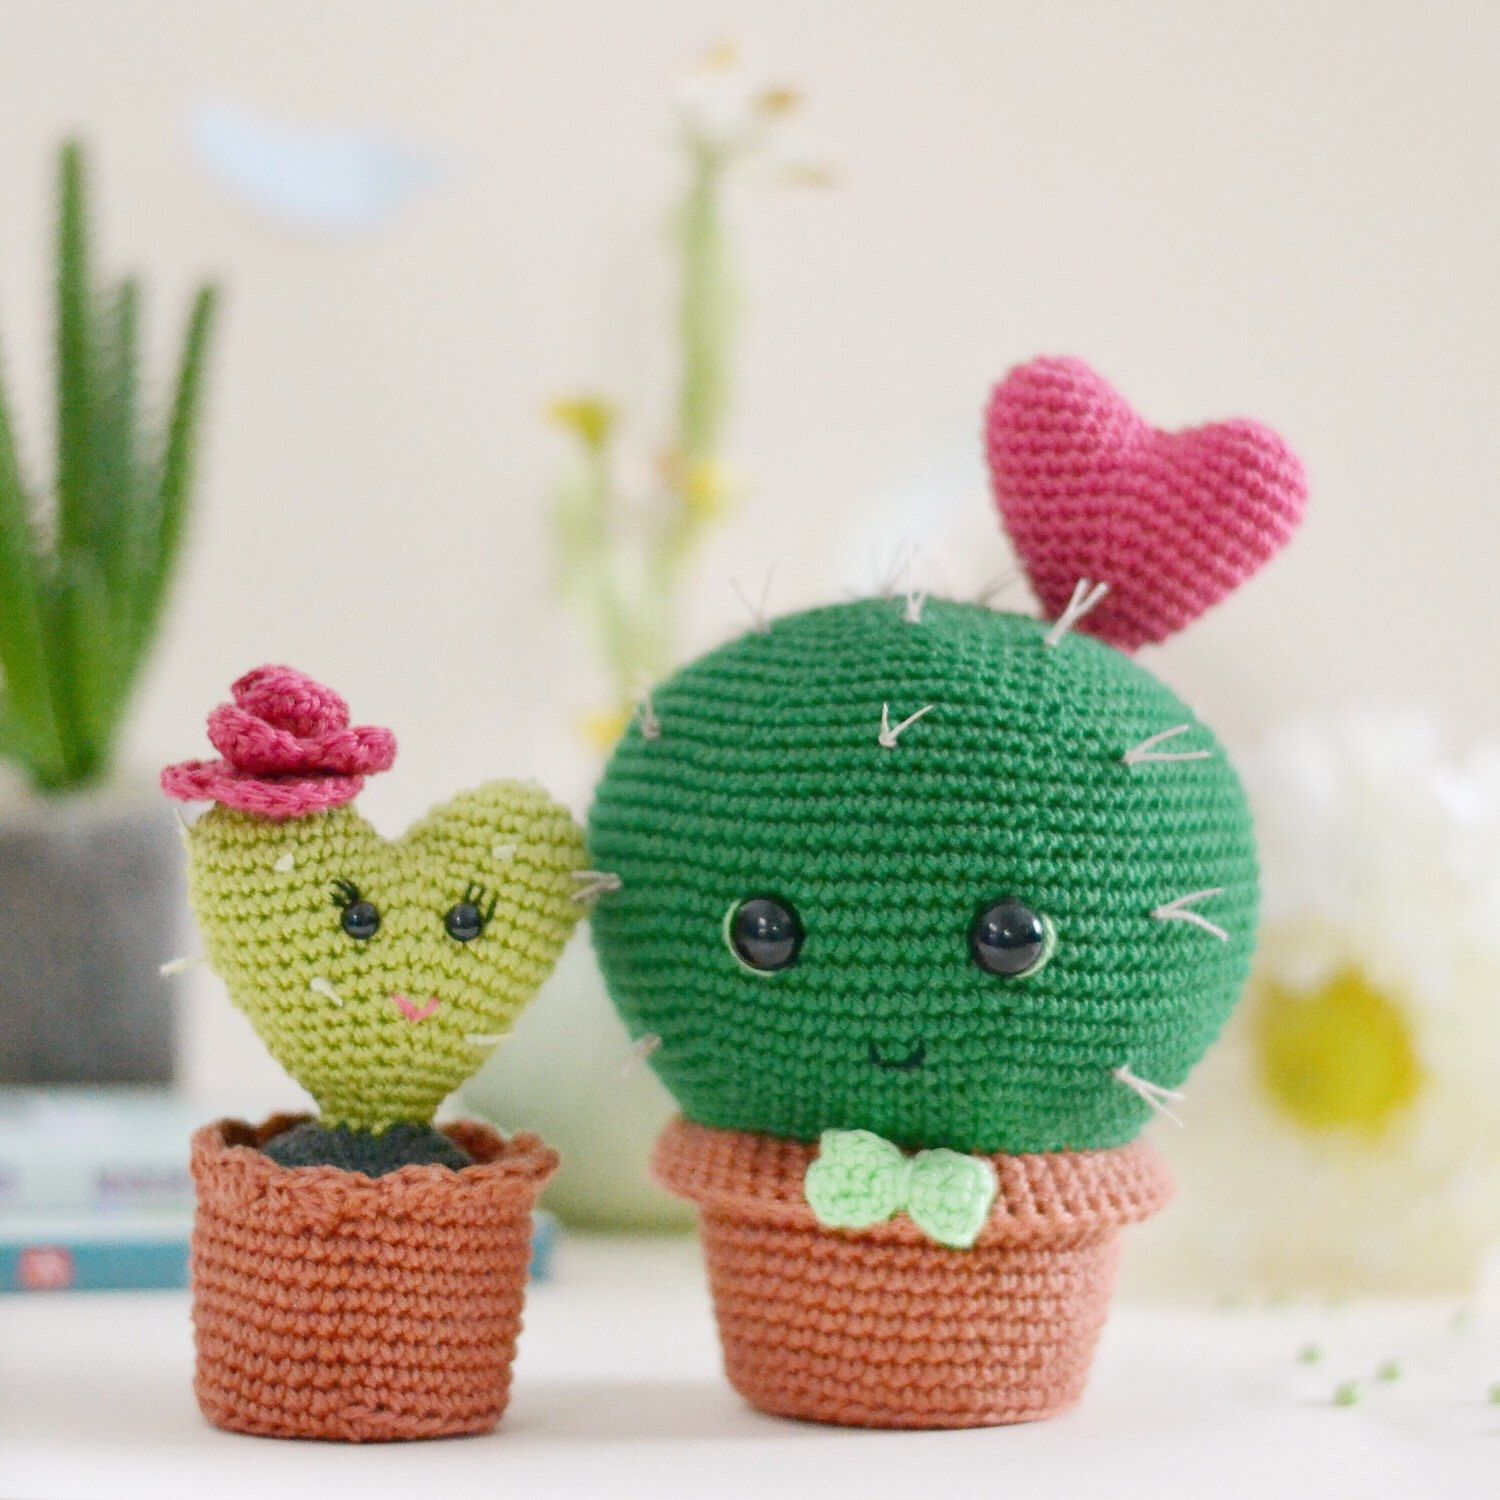 12 Crochet Cactus Tutorial - Creative Ideas (With images ... | 1500x1500